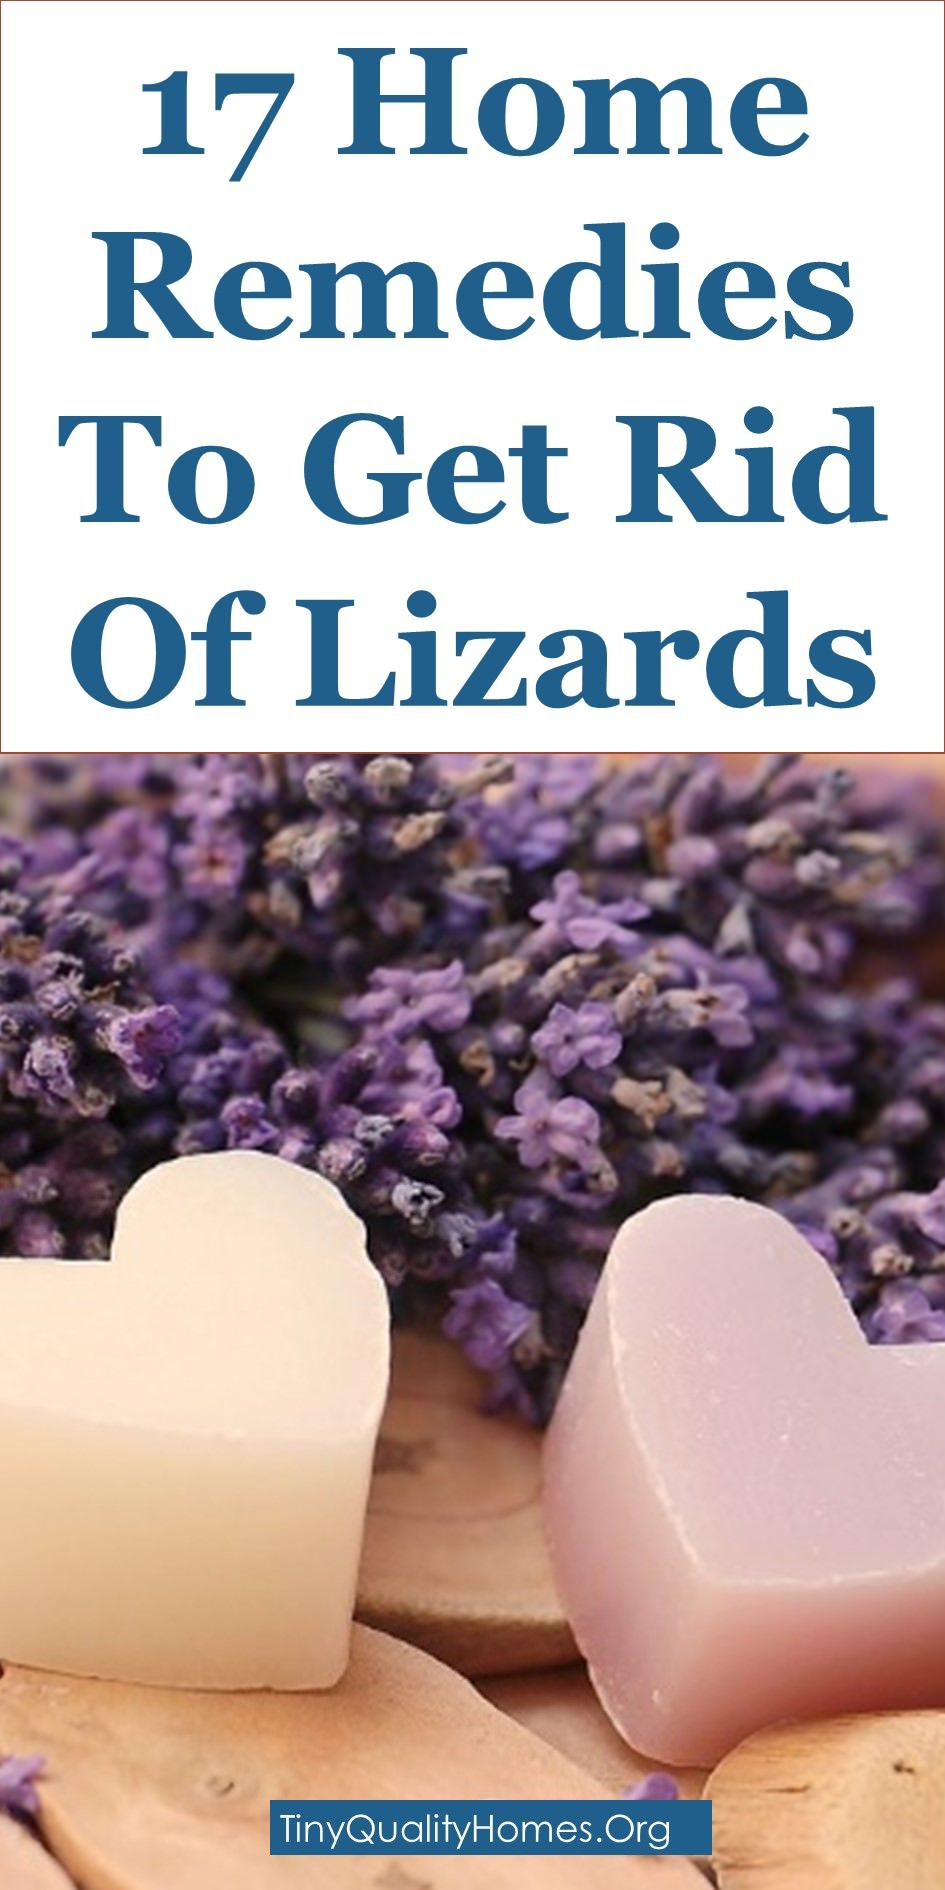 17 Home Remedies & Lizard Repellents To Get Rid Of Lizards